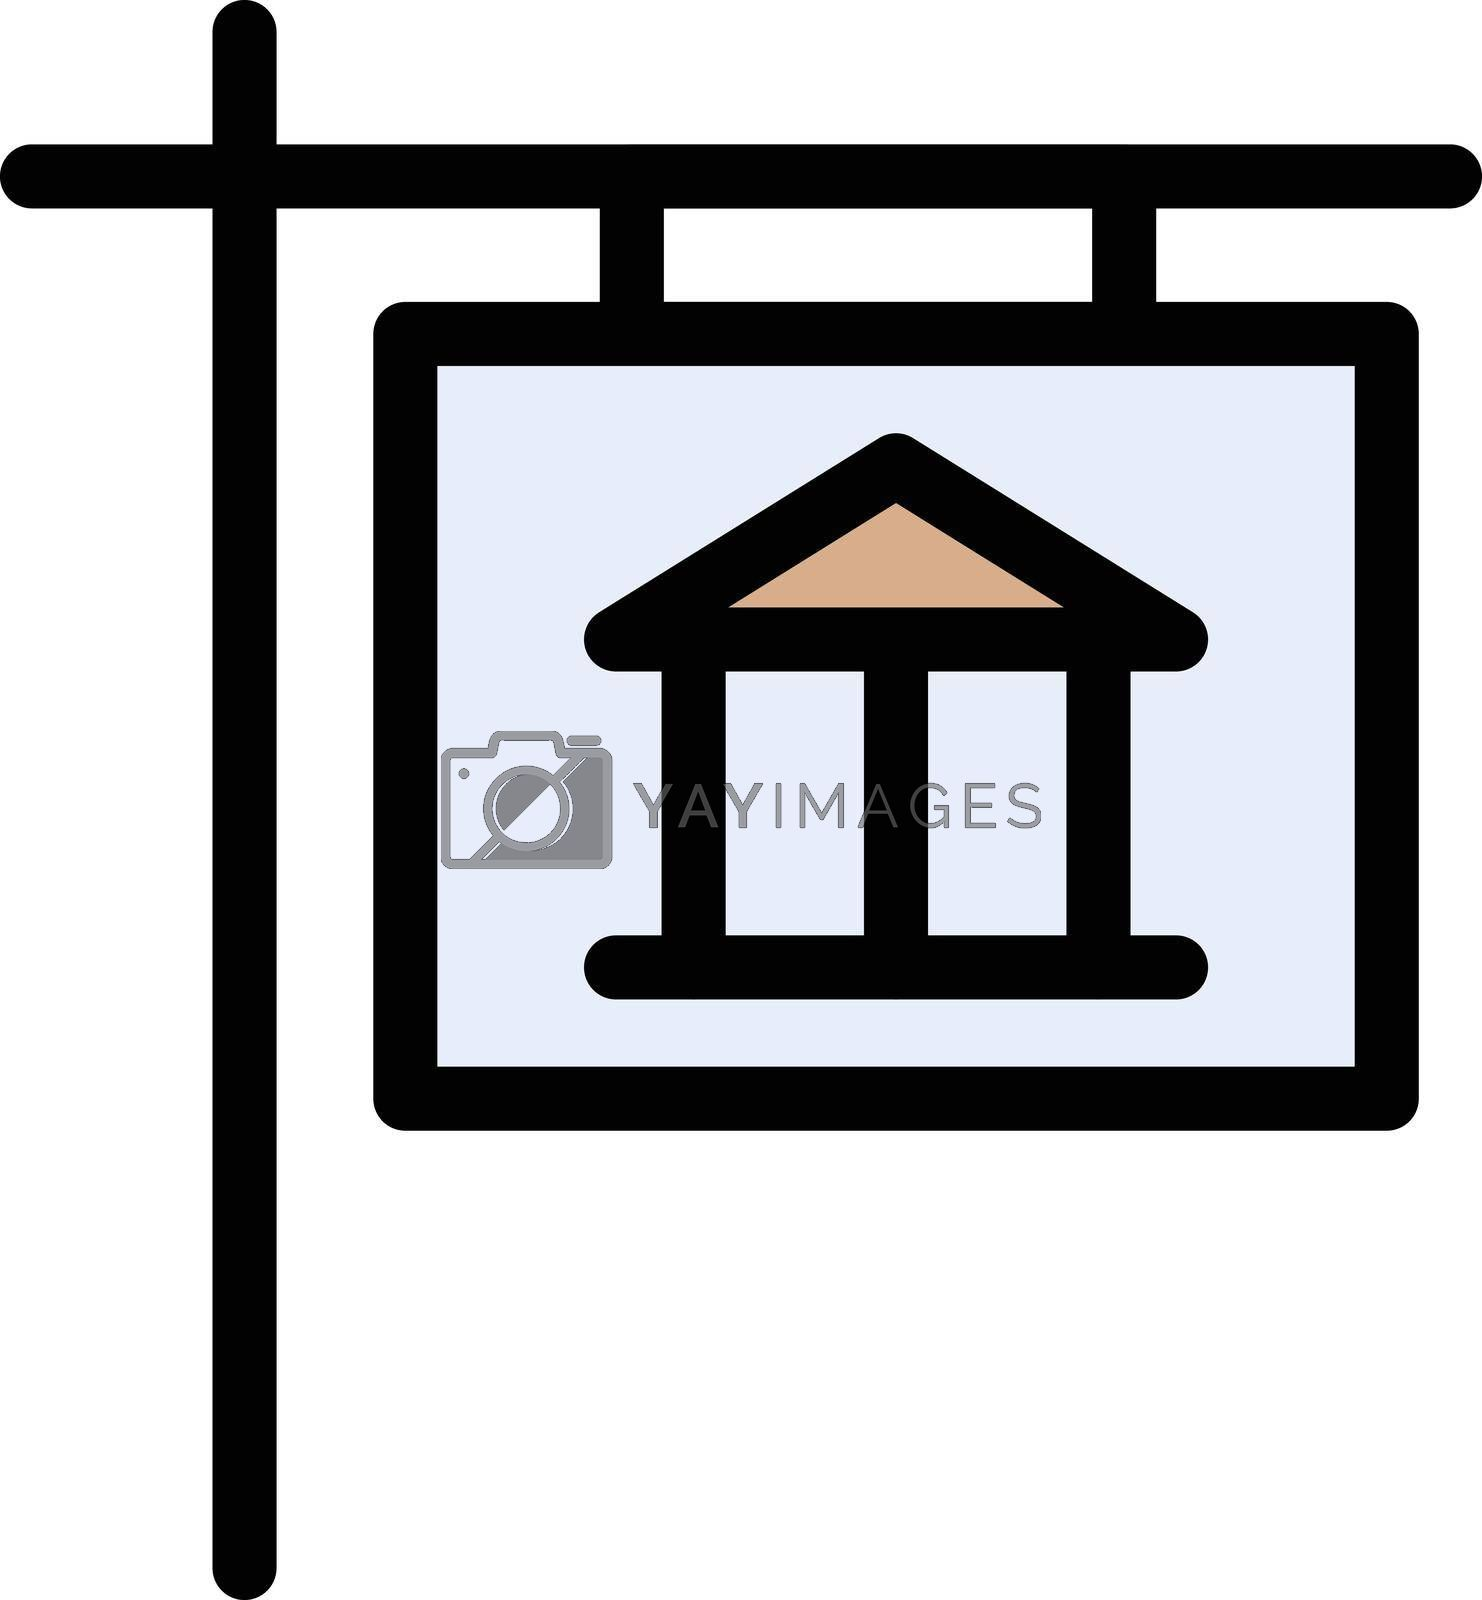 Royalty free image of museum board by vectorstall